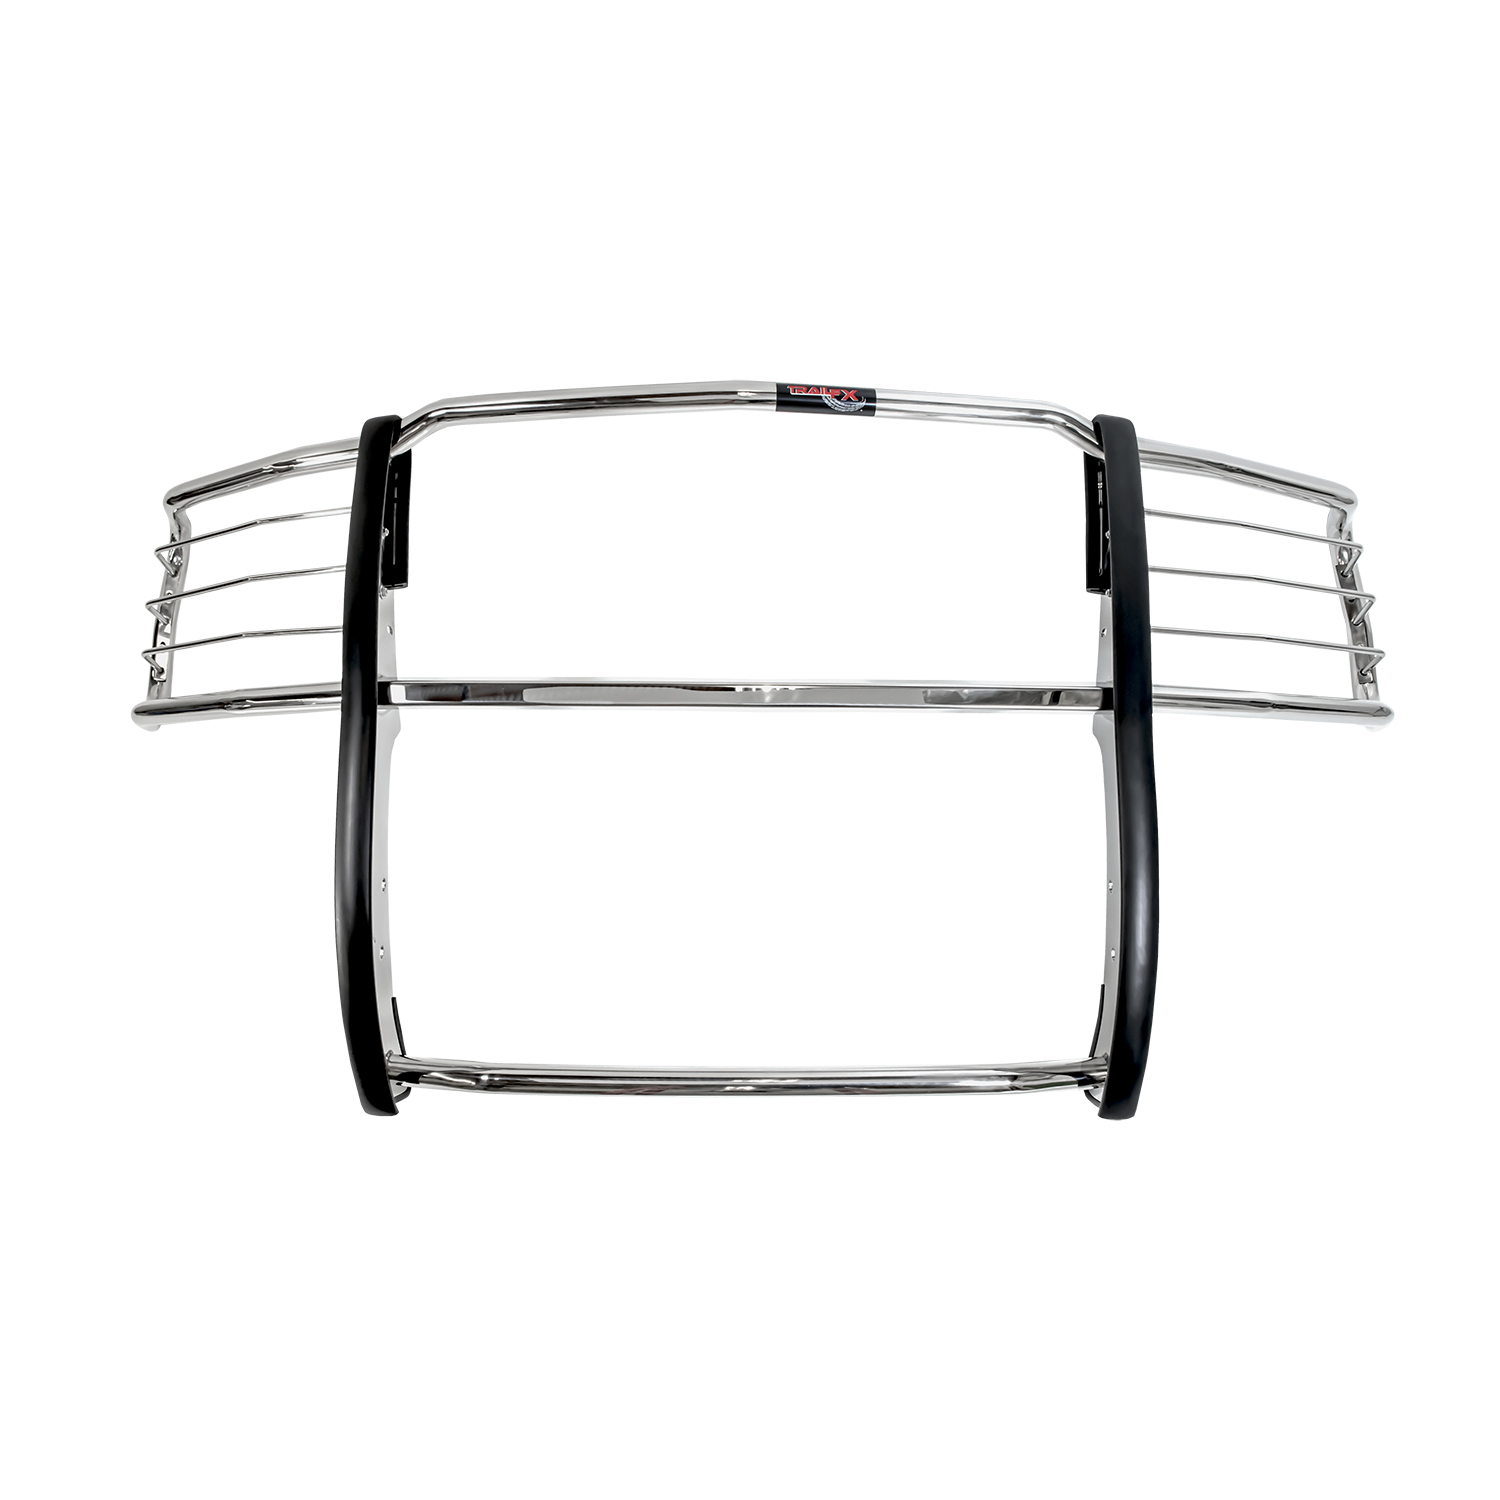 E S Trailfx Grille Guard Polished